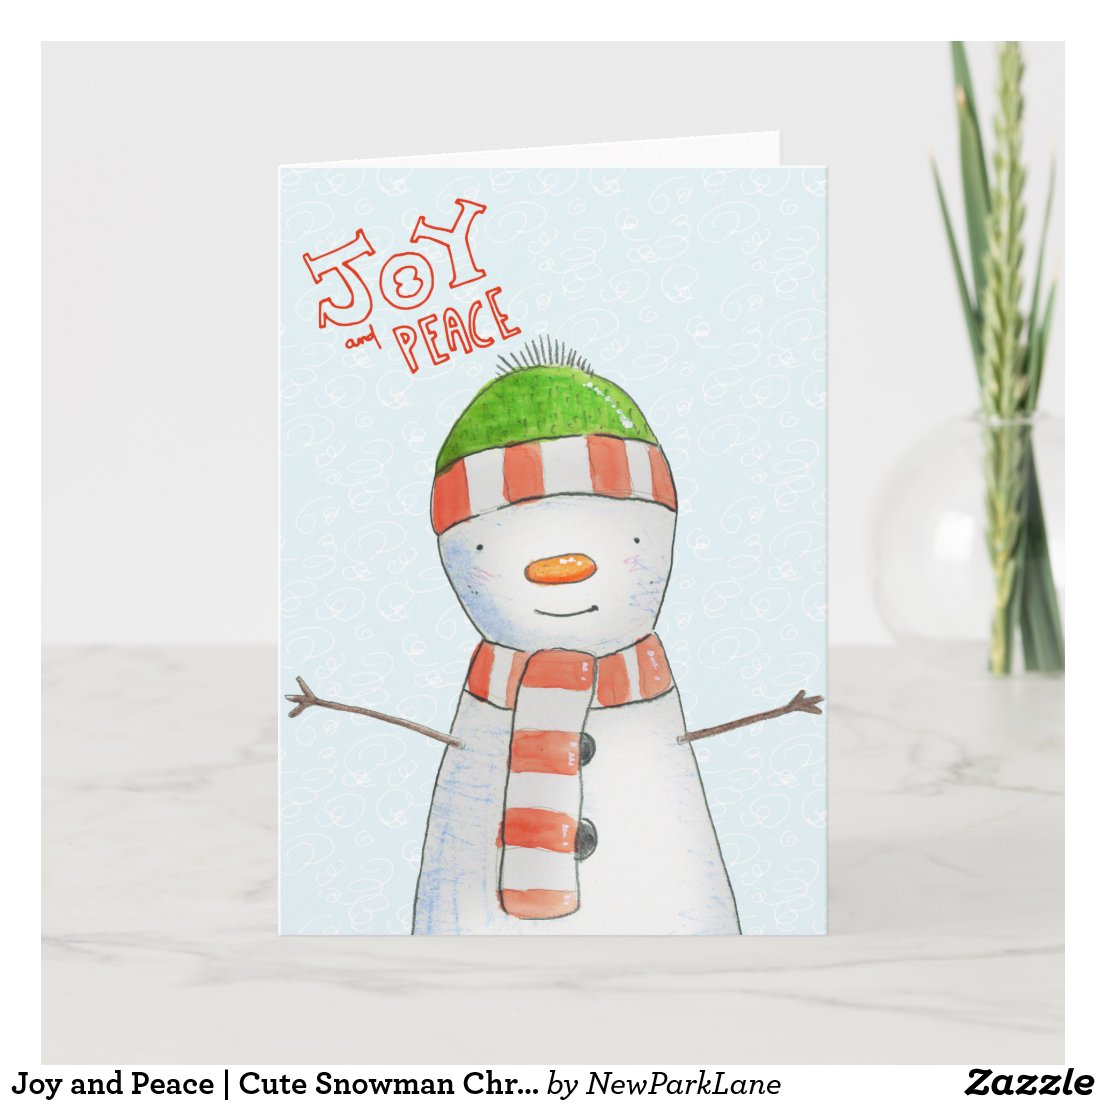 Joy and Peace | Cute Snowman Christmas Holiday Card